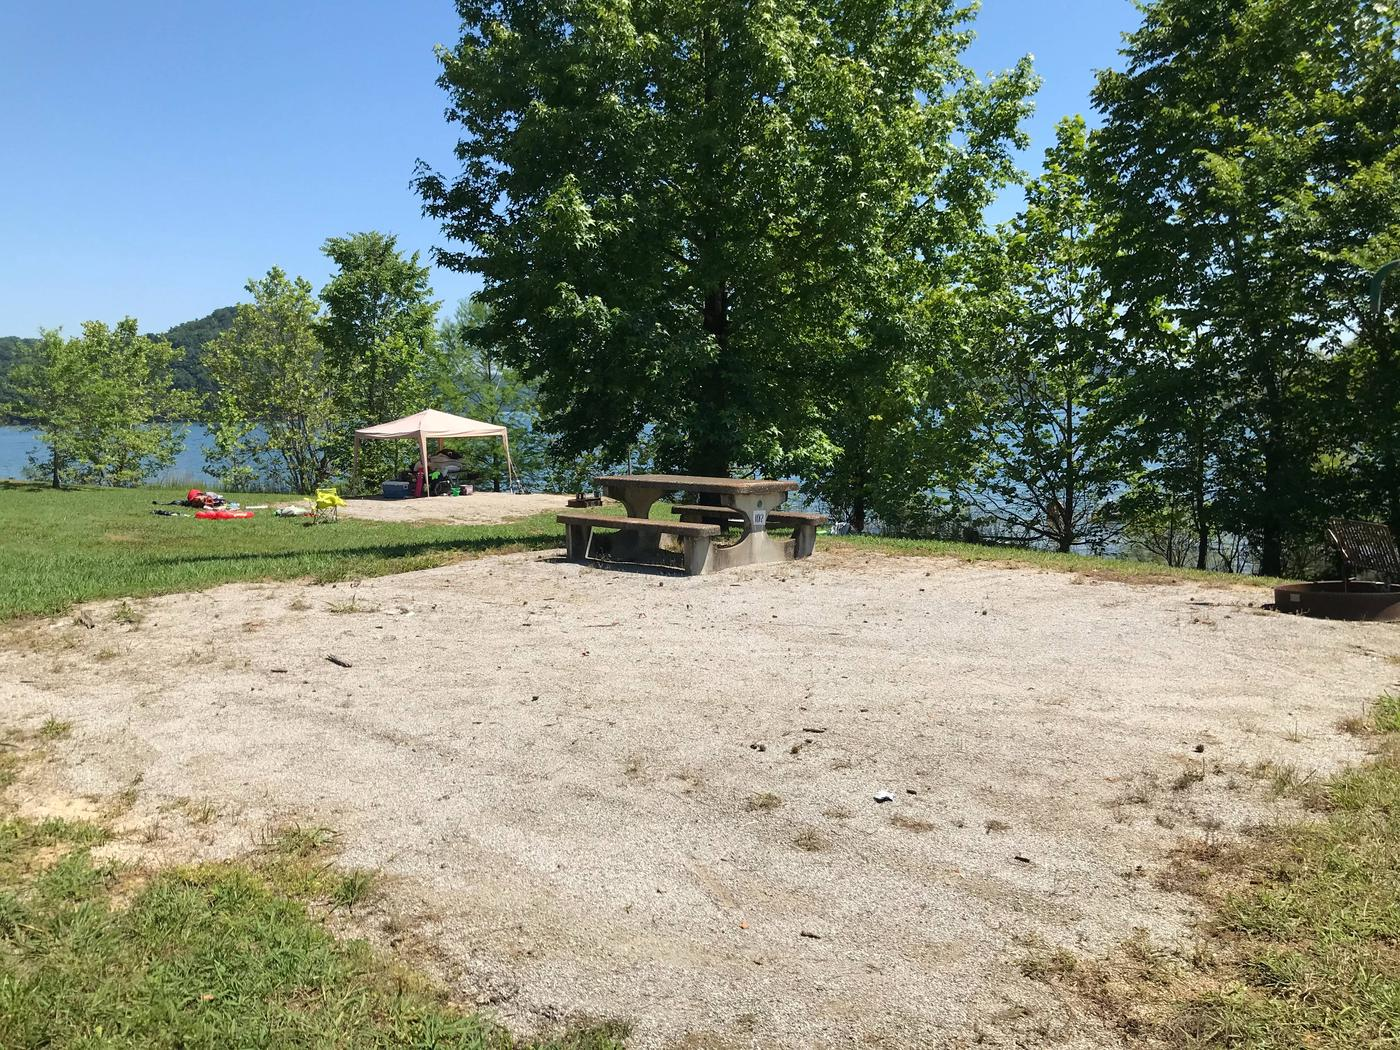 LILLYDALE CAMPGROUND SITE # 102